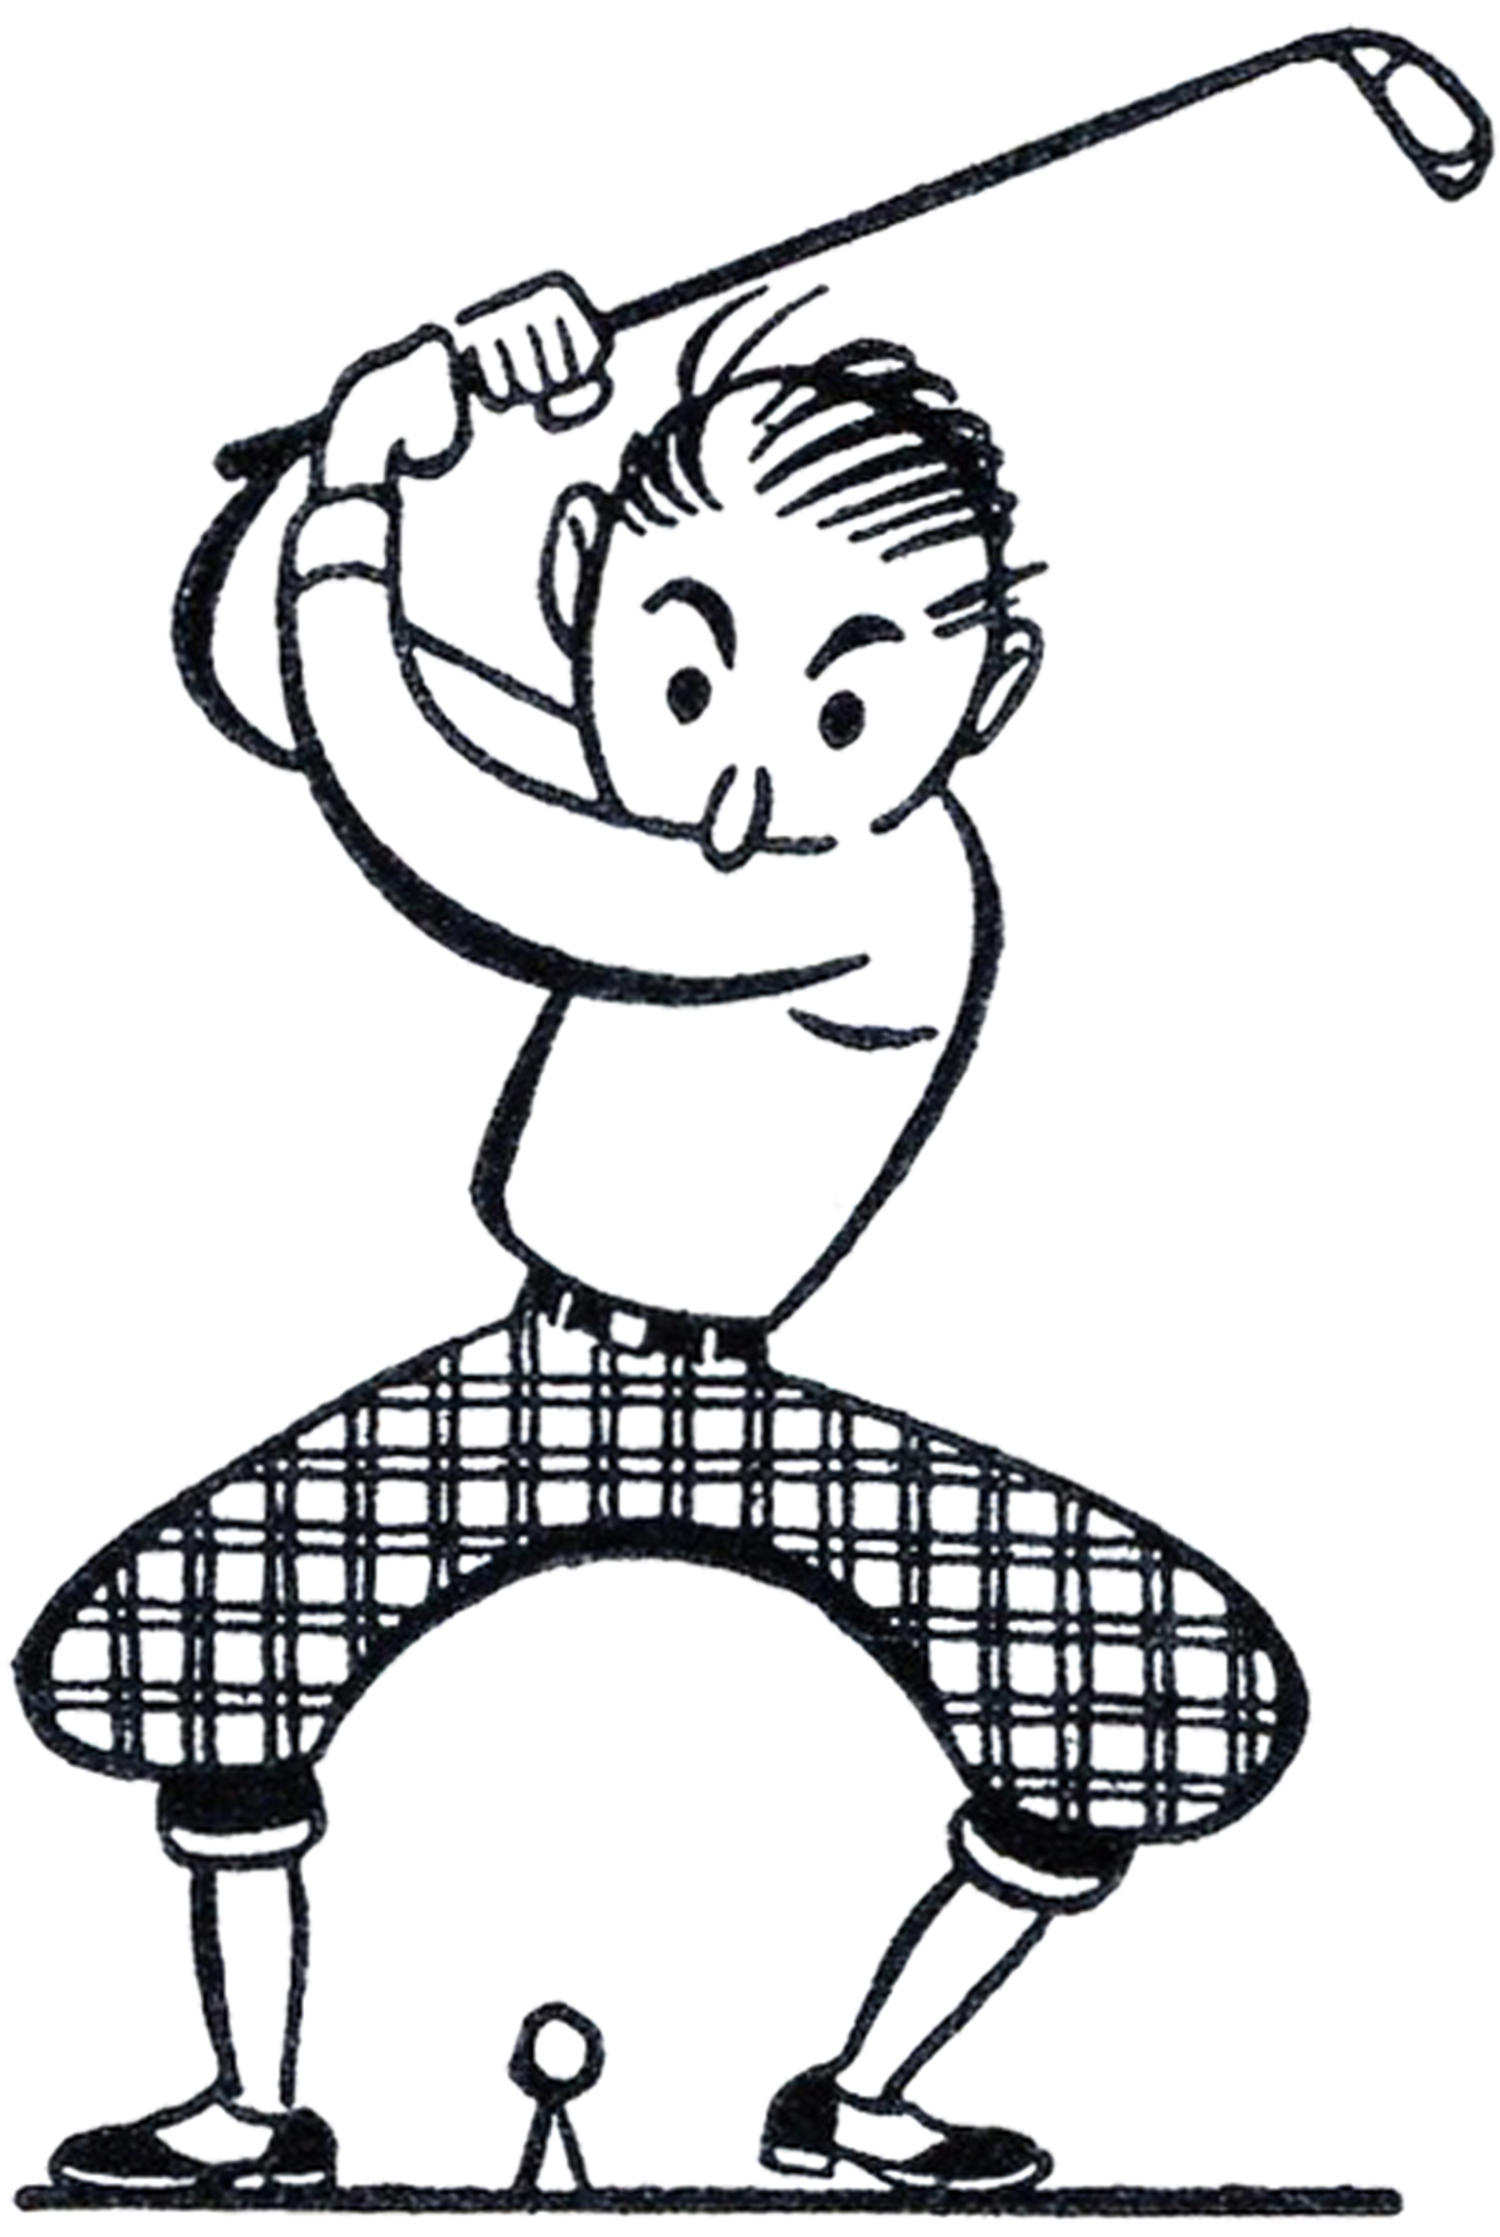 funny golf black and white clipart clipart suggest